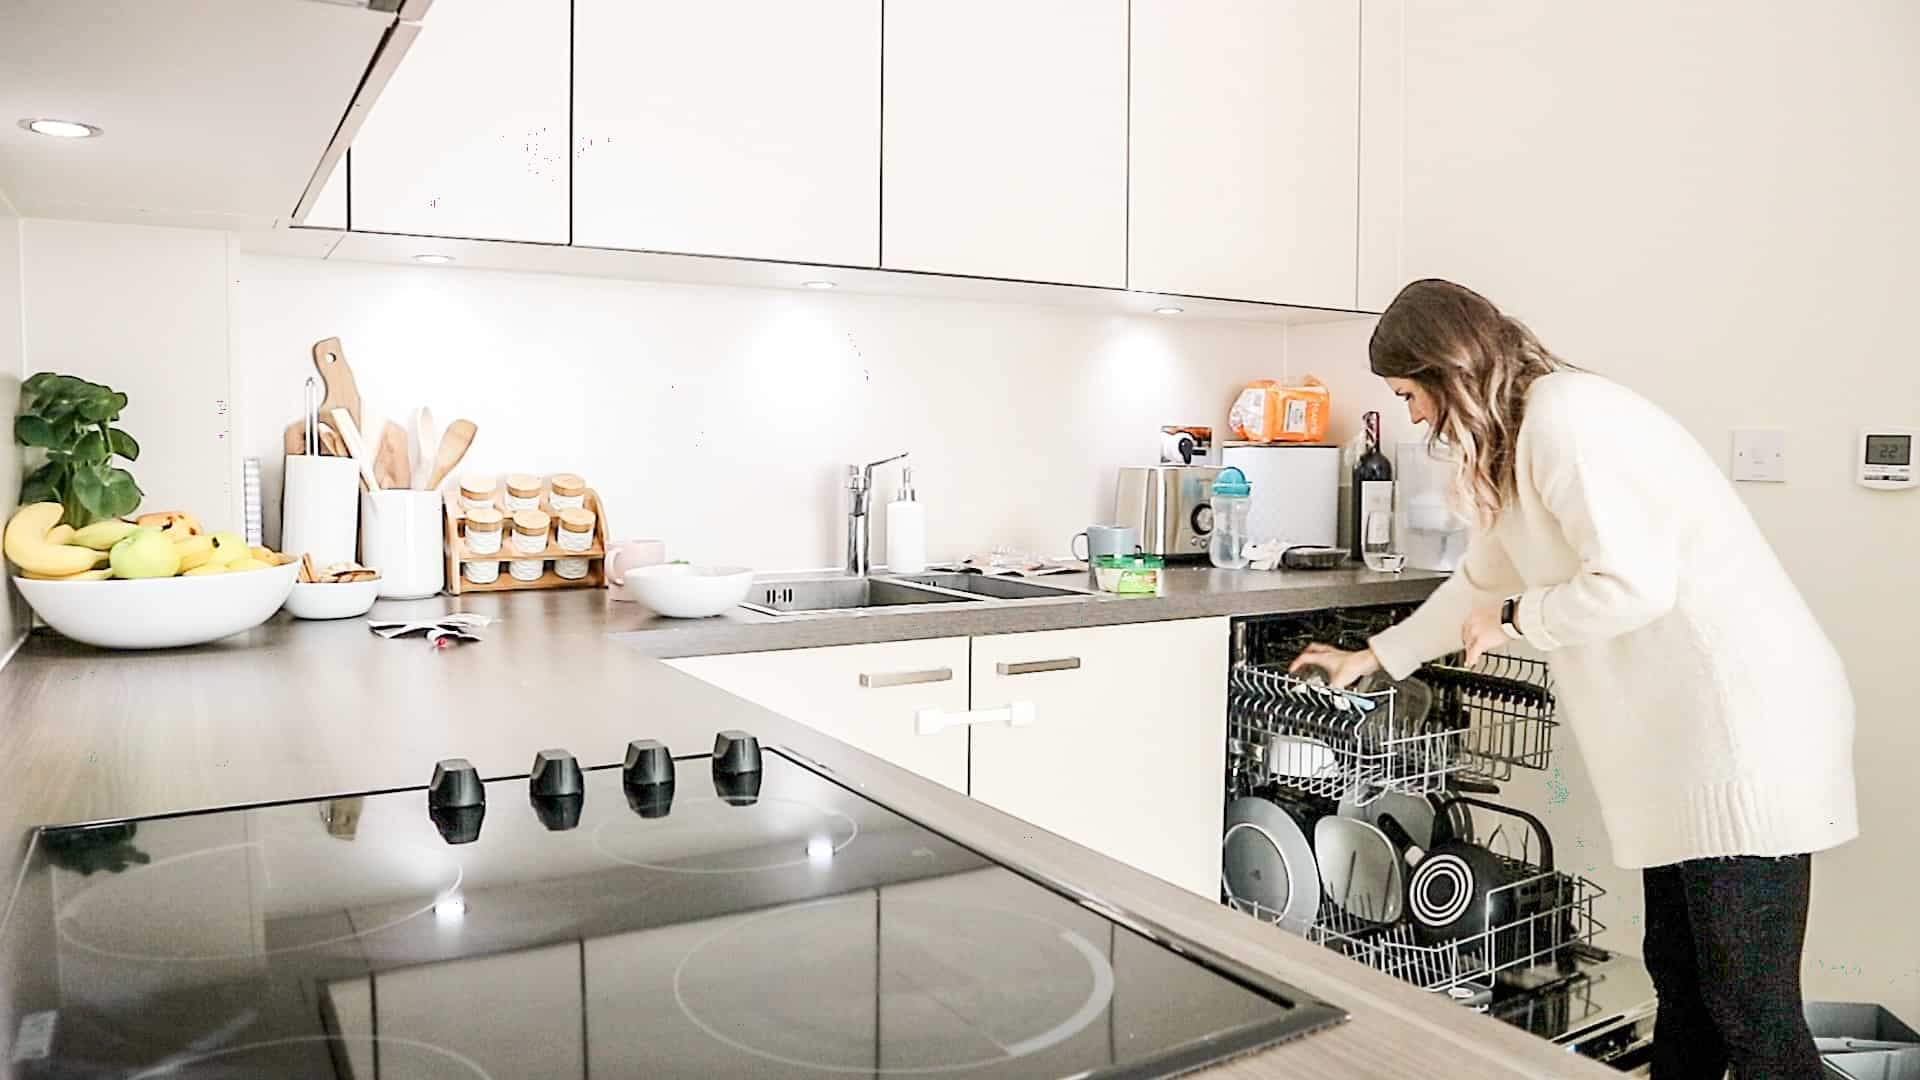 Tips to keep a clean kitchen